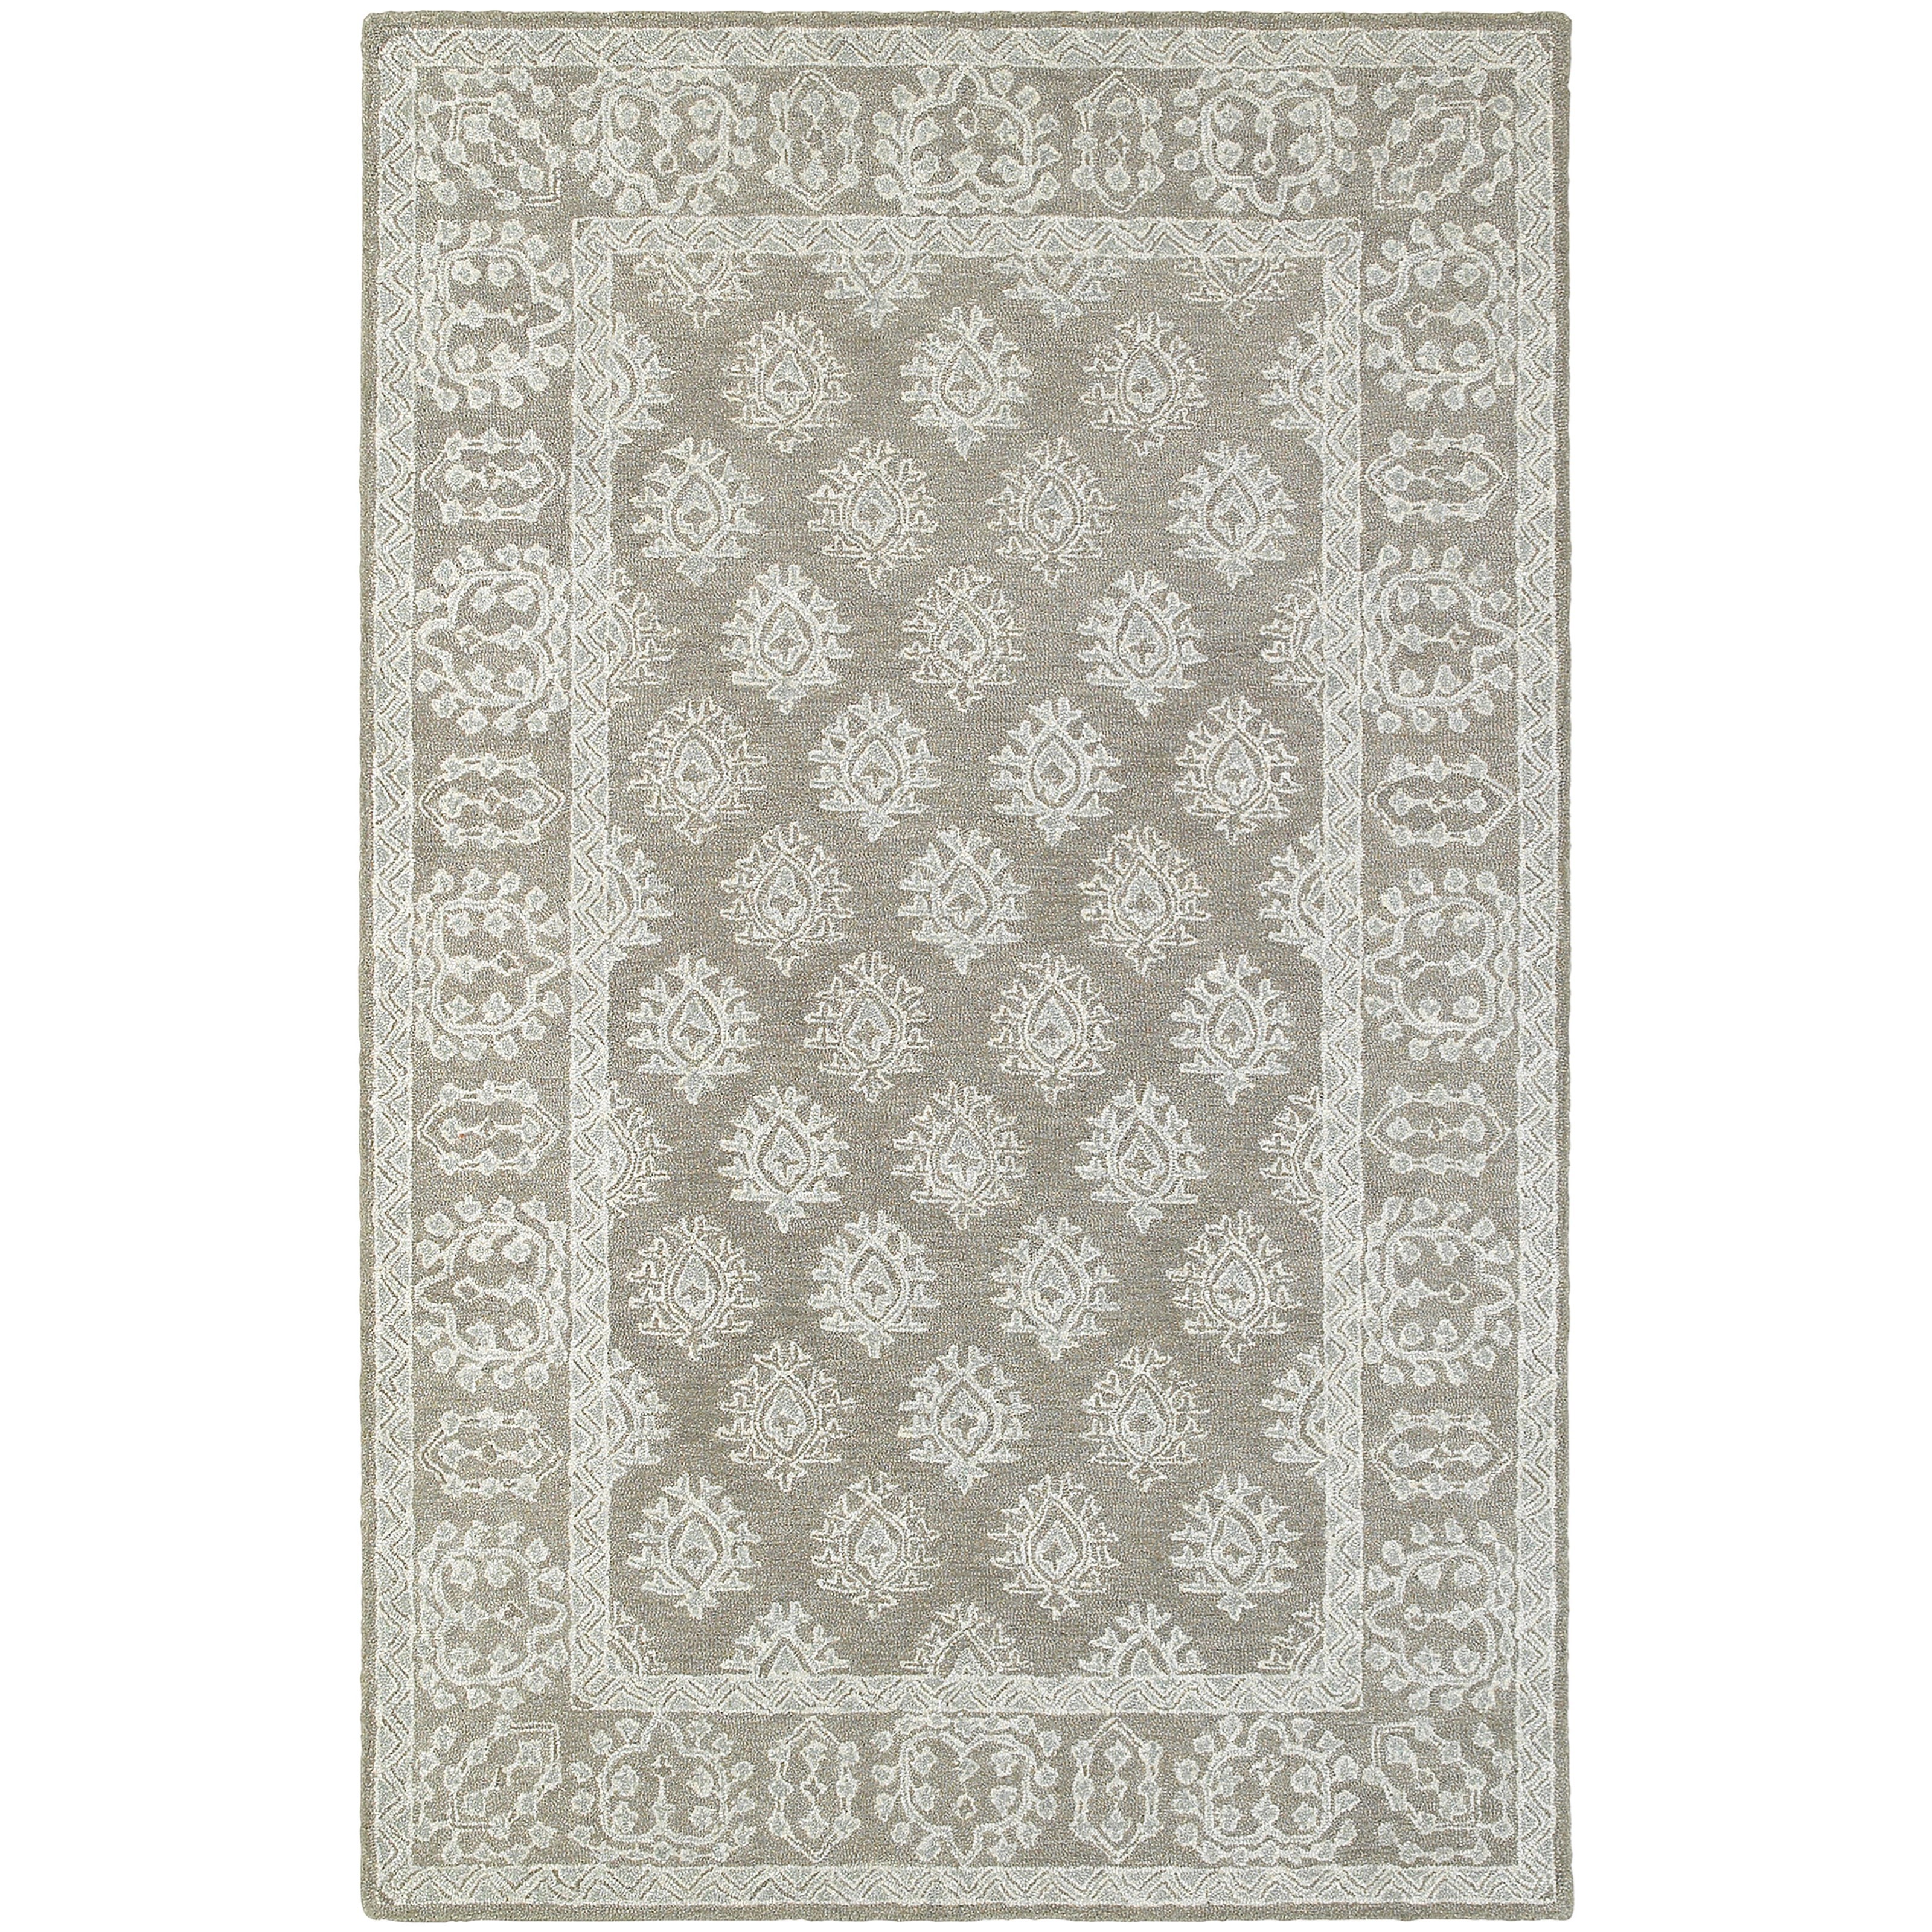 """Manor 3' 6"""" X  5' 6"""" Casual Grey/ Beige Rectangle  by Oriental Weavers at Lucas Furniture & Mattress"""